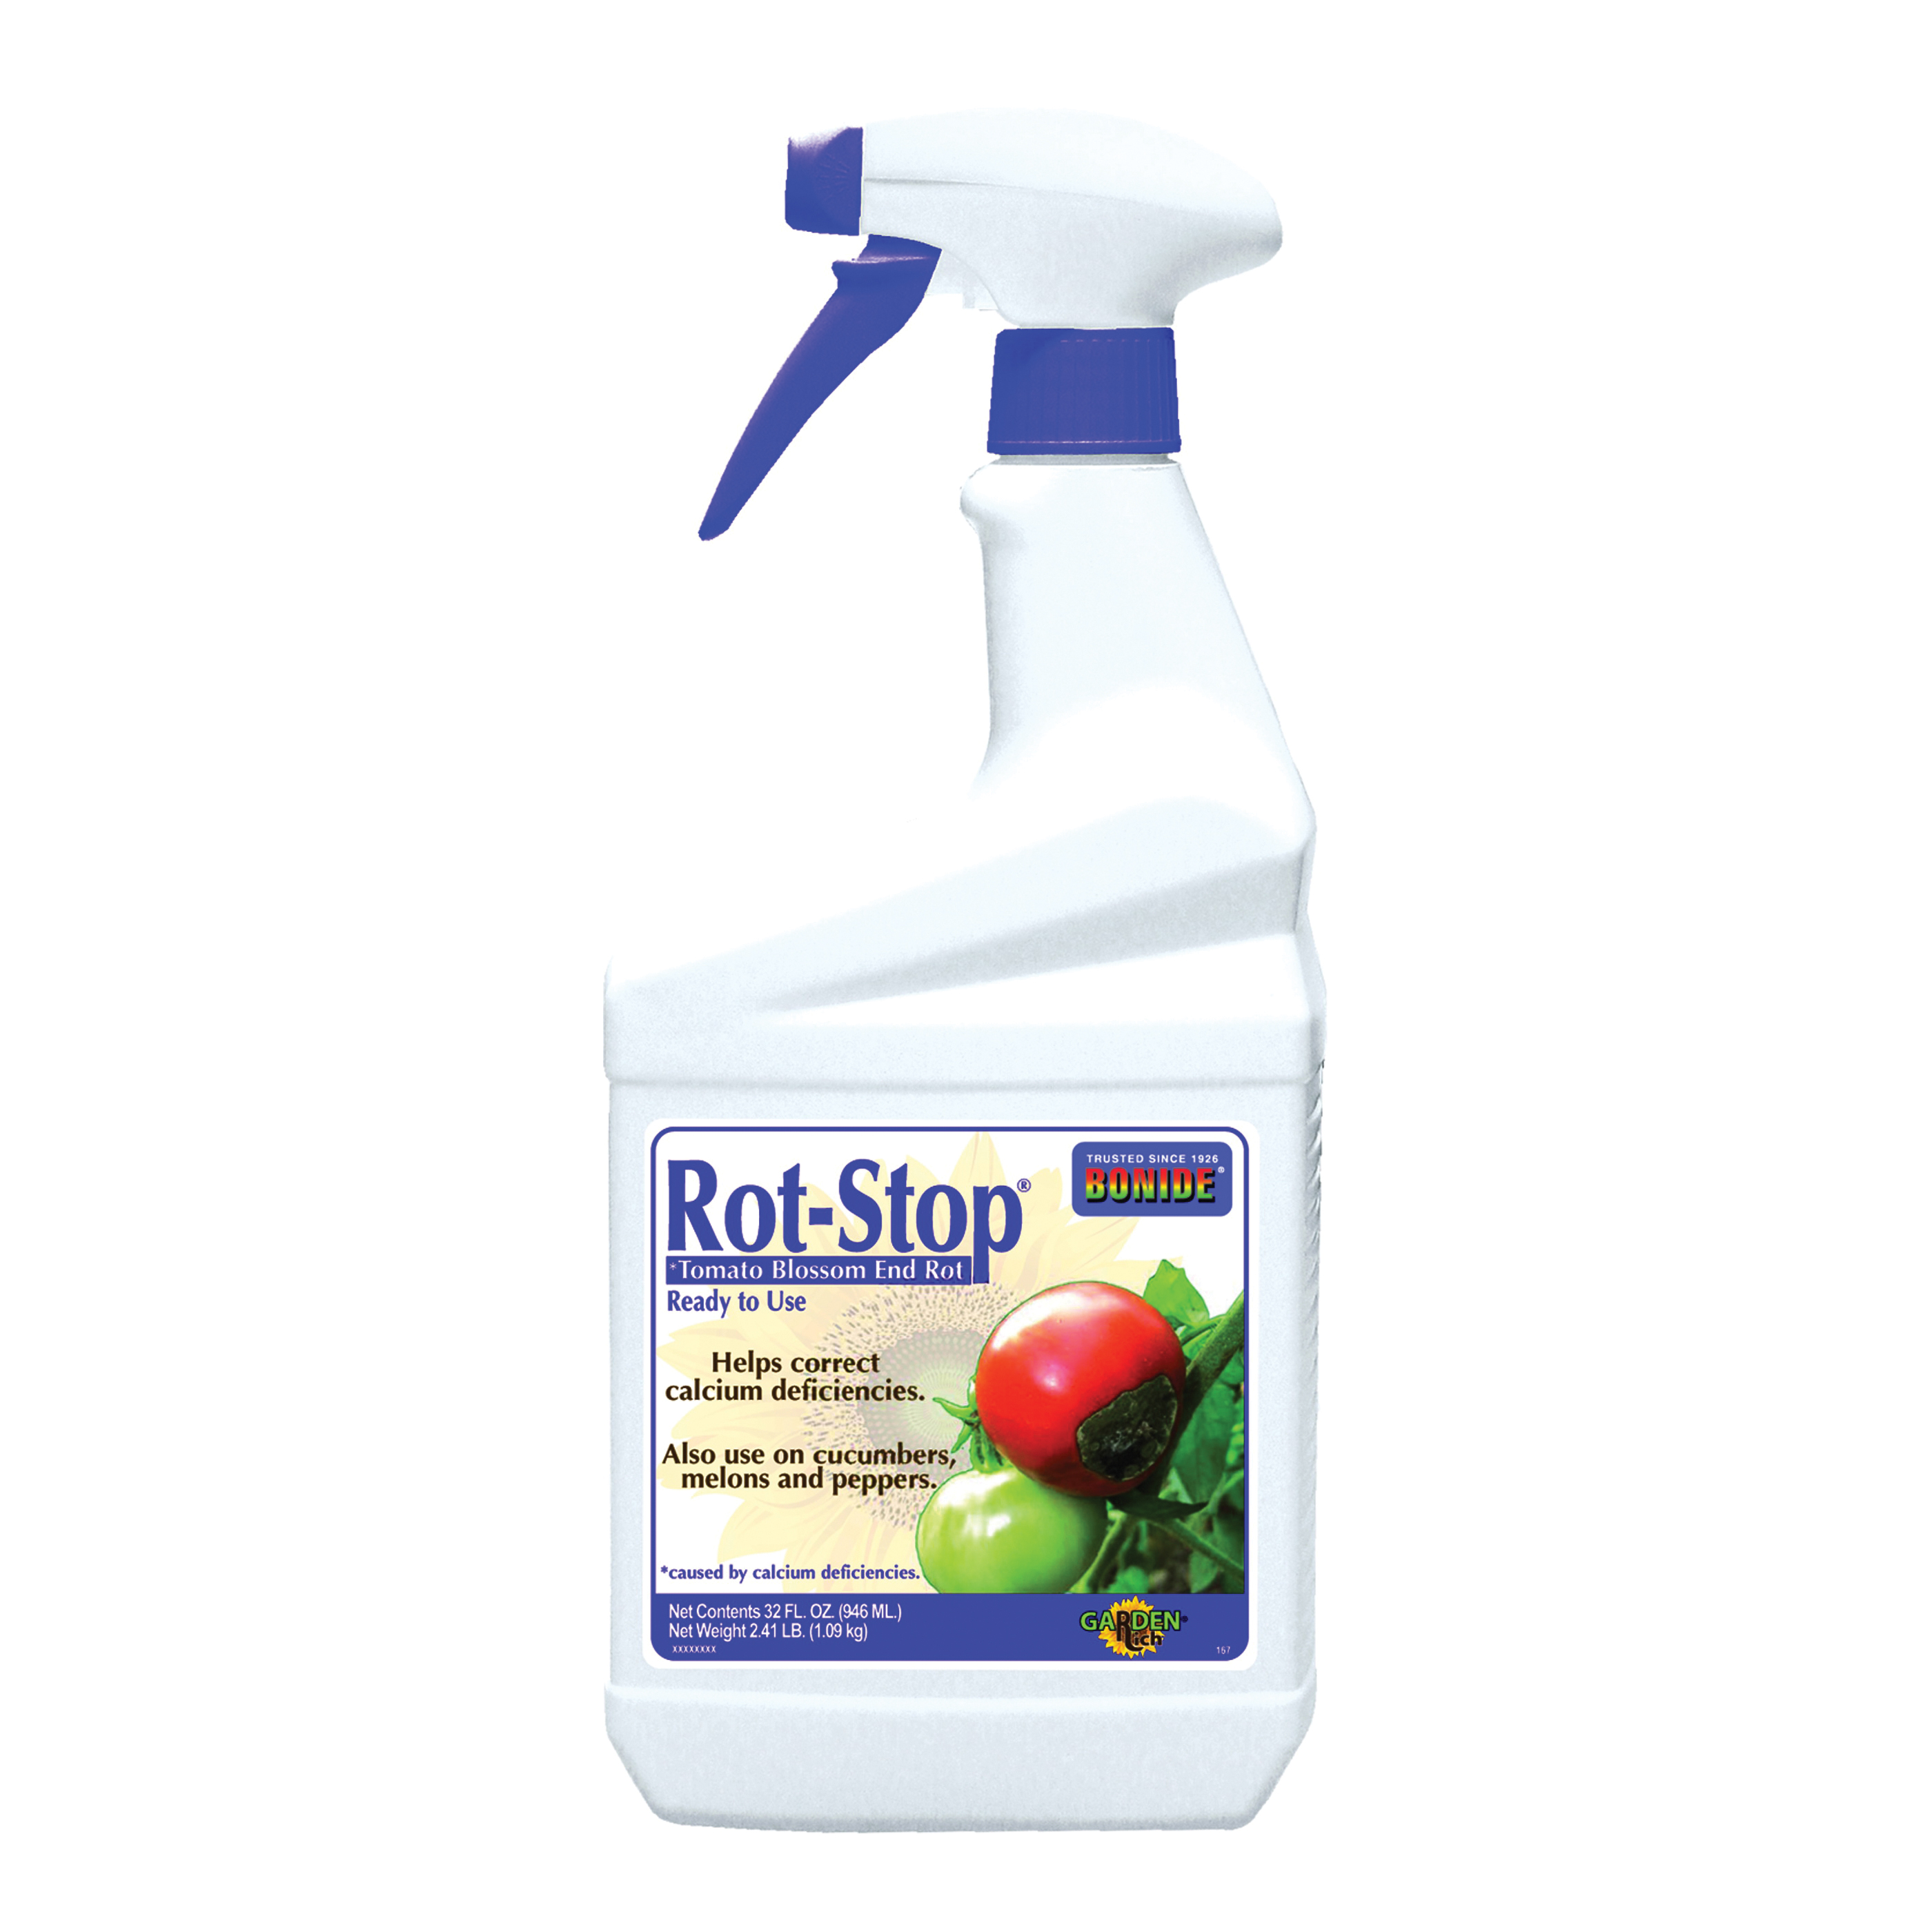 Picture of Bonide Rot-Stop 167 Tomato Blossom End Rot, Liquid, Minimal, if Any, White, 1 qt Package